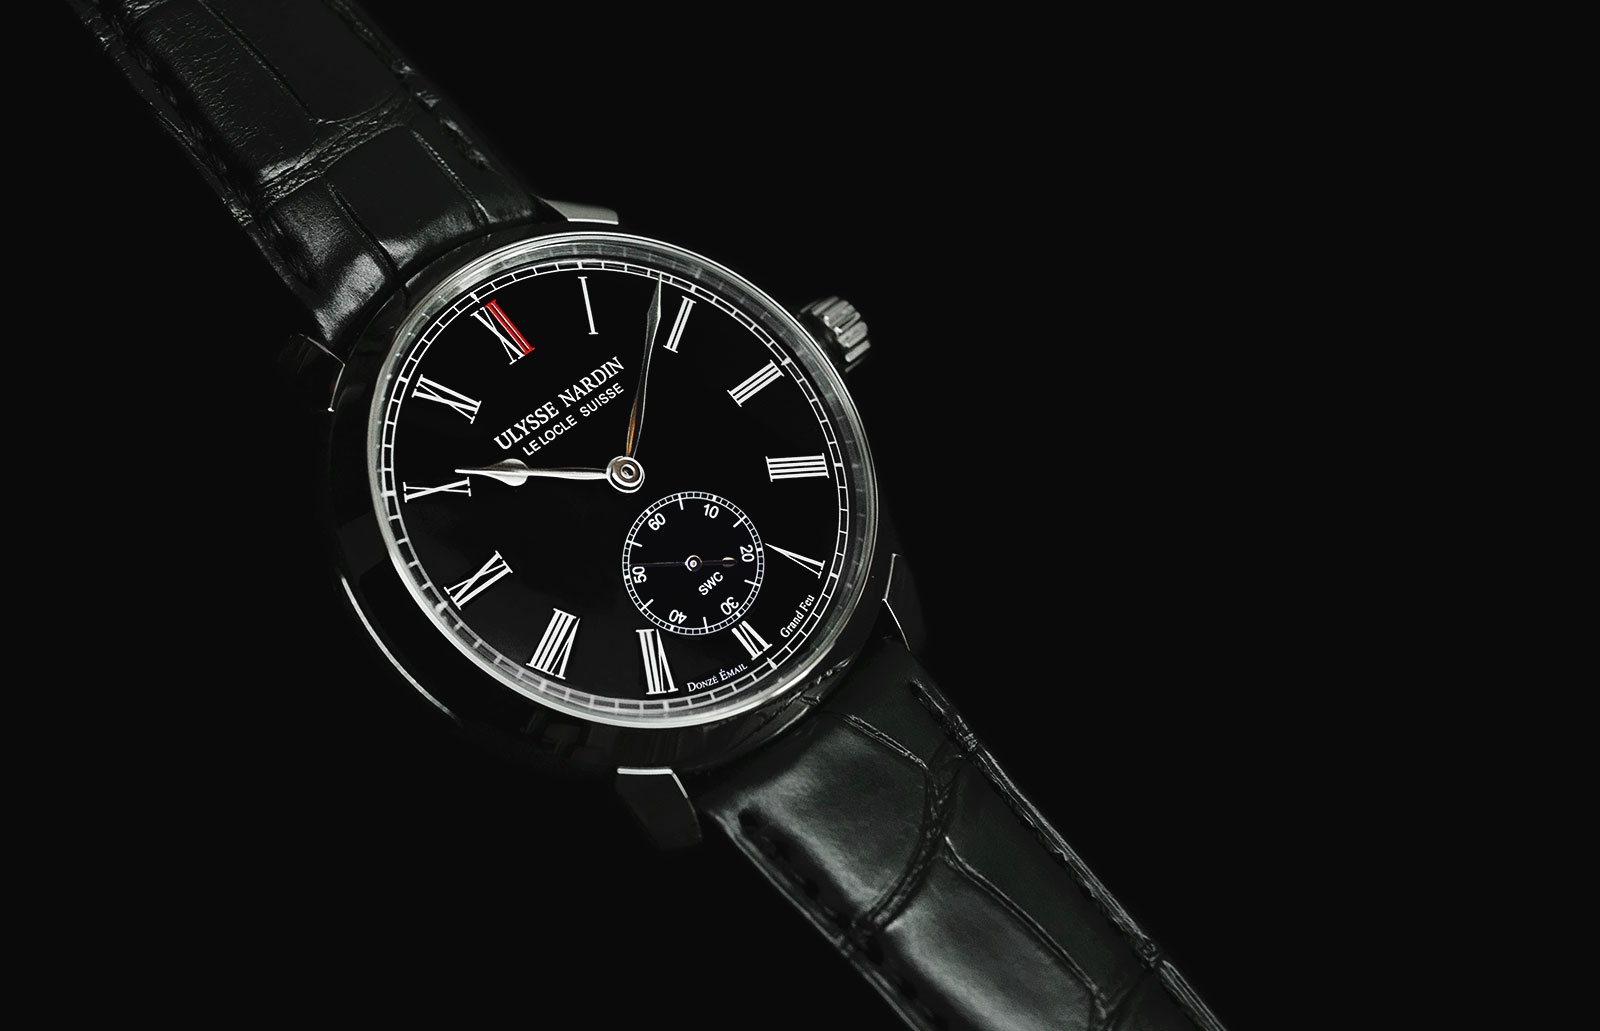 Ulysse-Nardin-Classico-Singapore-Watch-Club